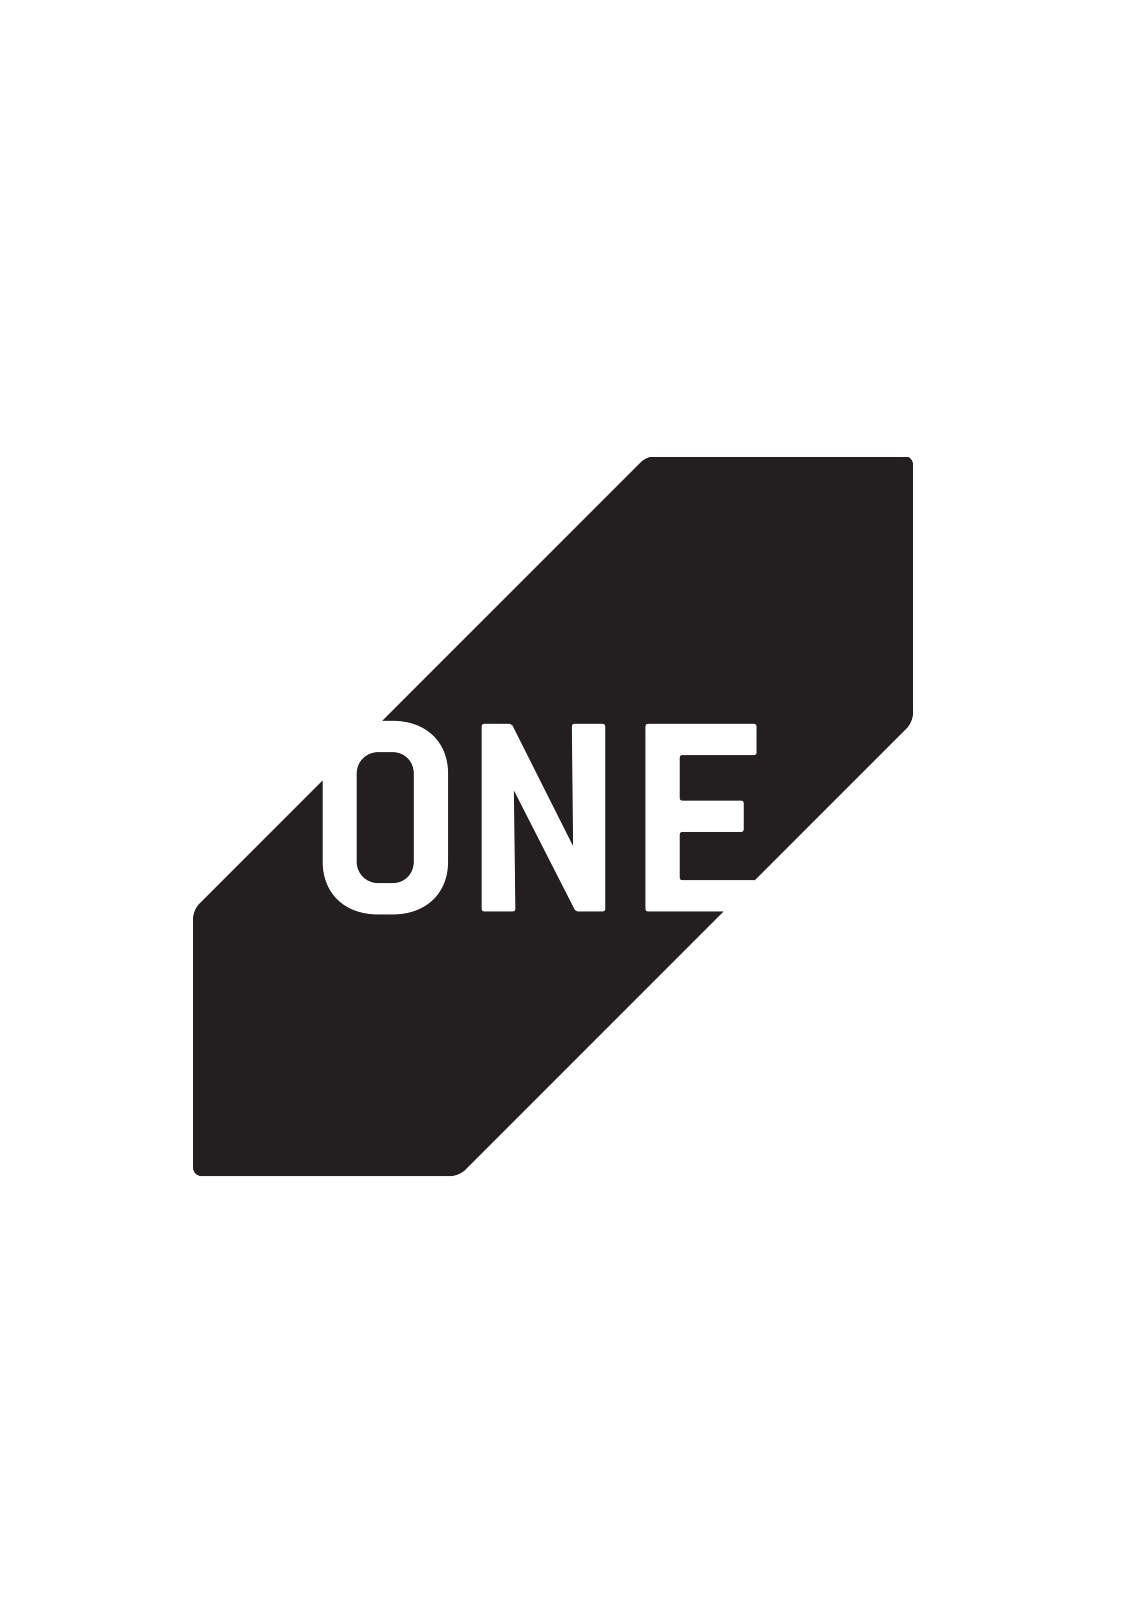 The-One-logo.png